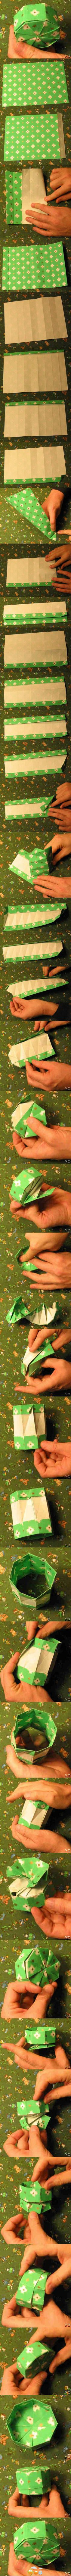 go to origami hexagonal gift box (non modular) on youtube for similar instructions